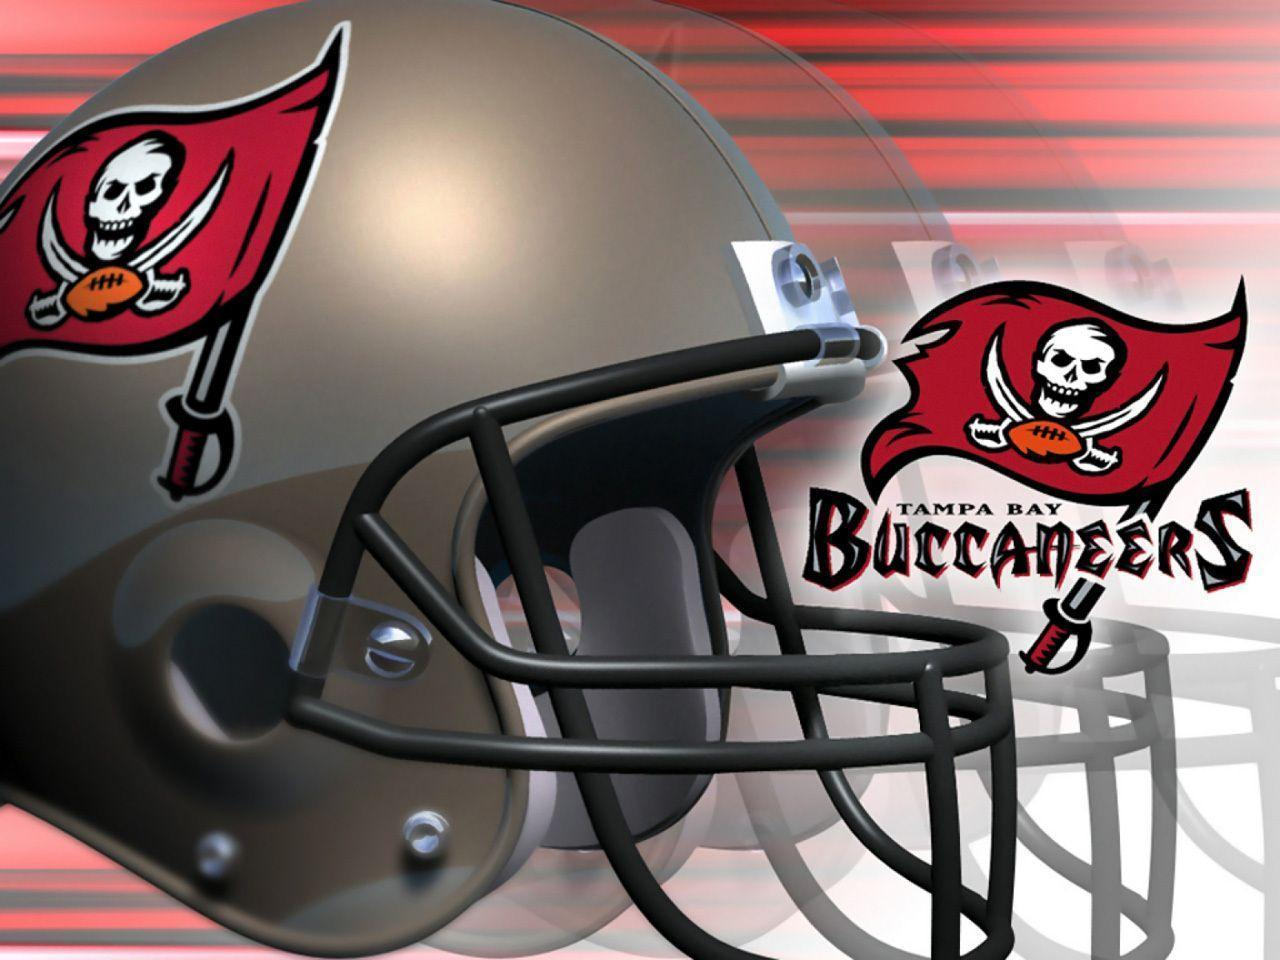 Tampa Bay Buccaneers images Tampa bay buccaneers HD wallpaper and ...